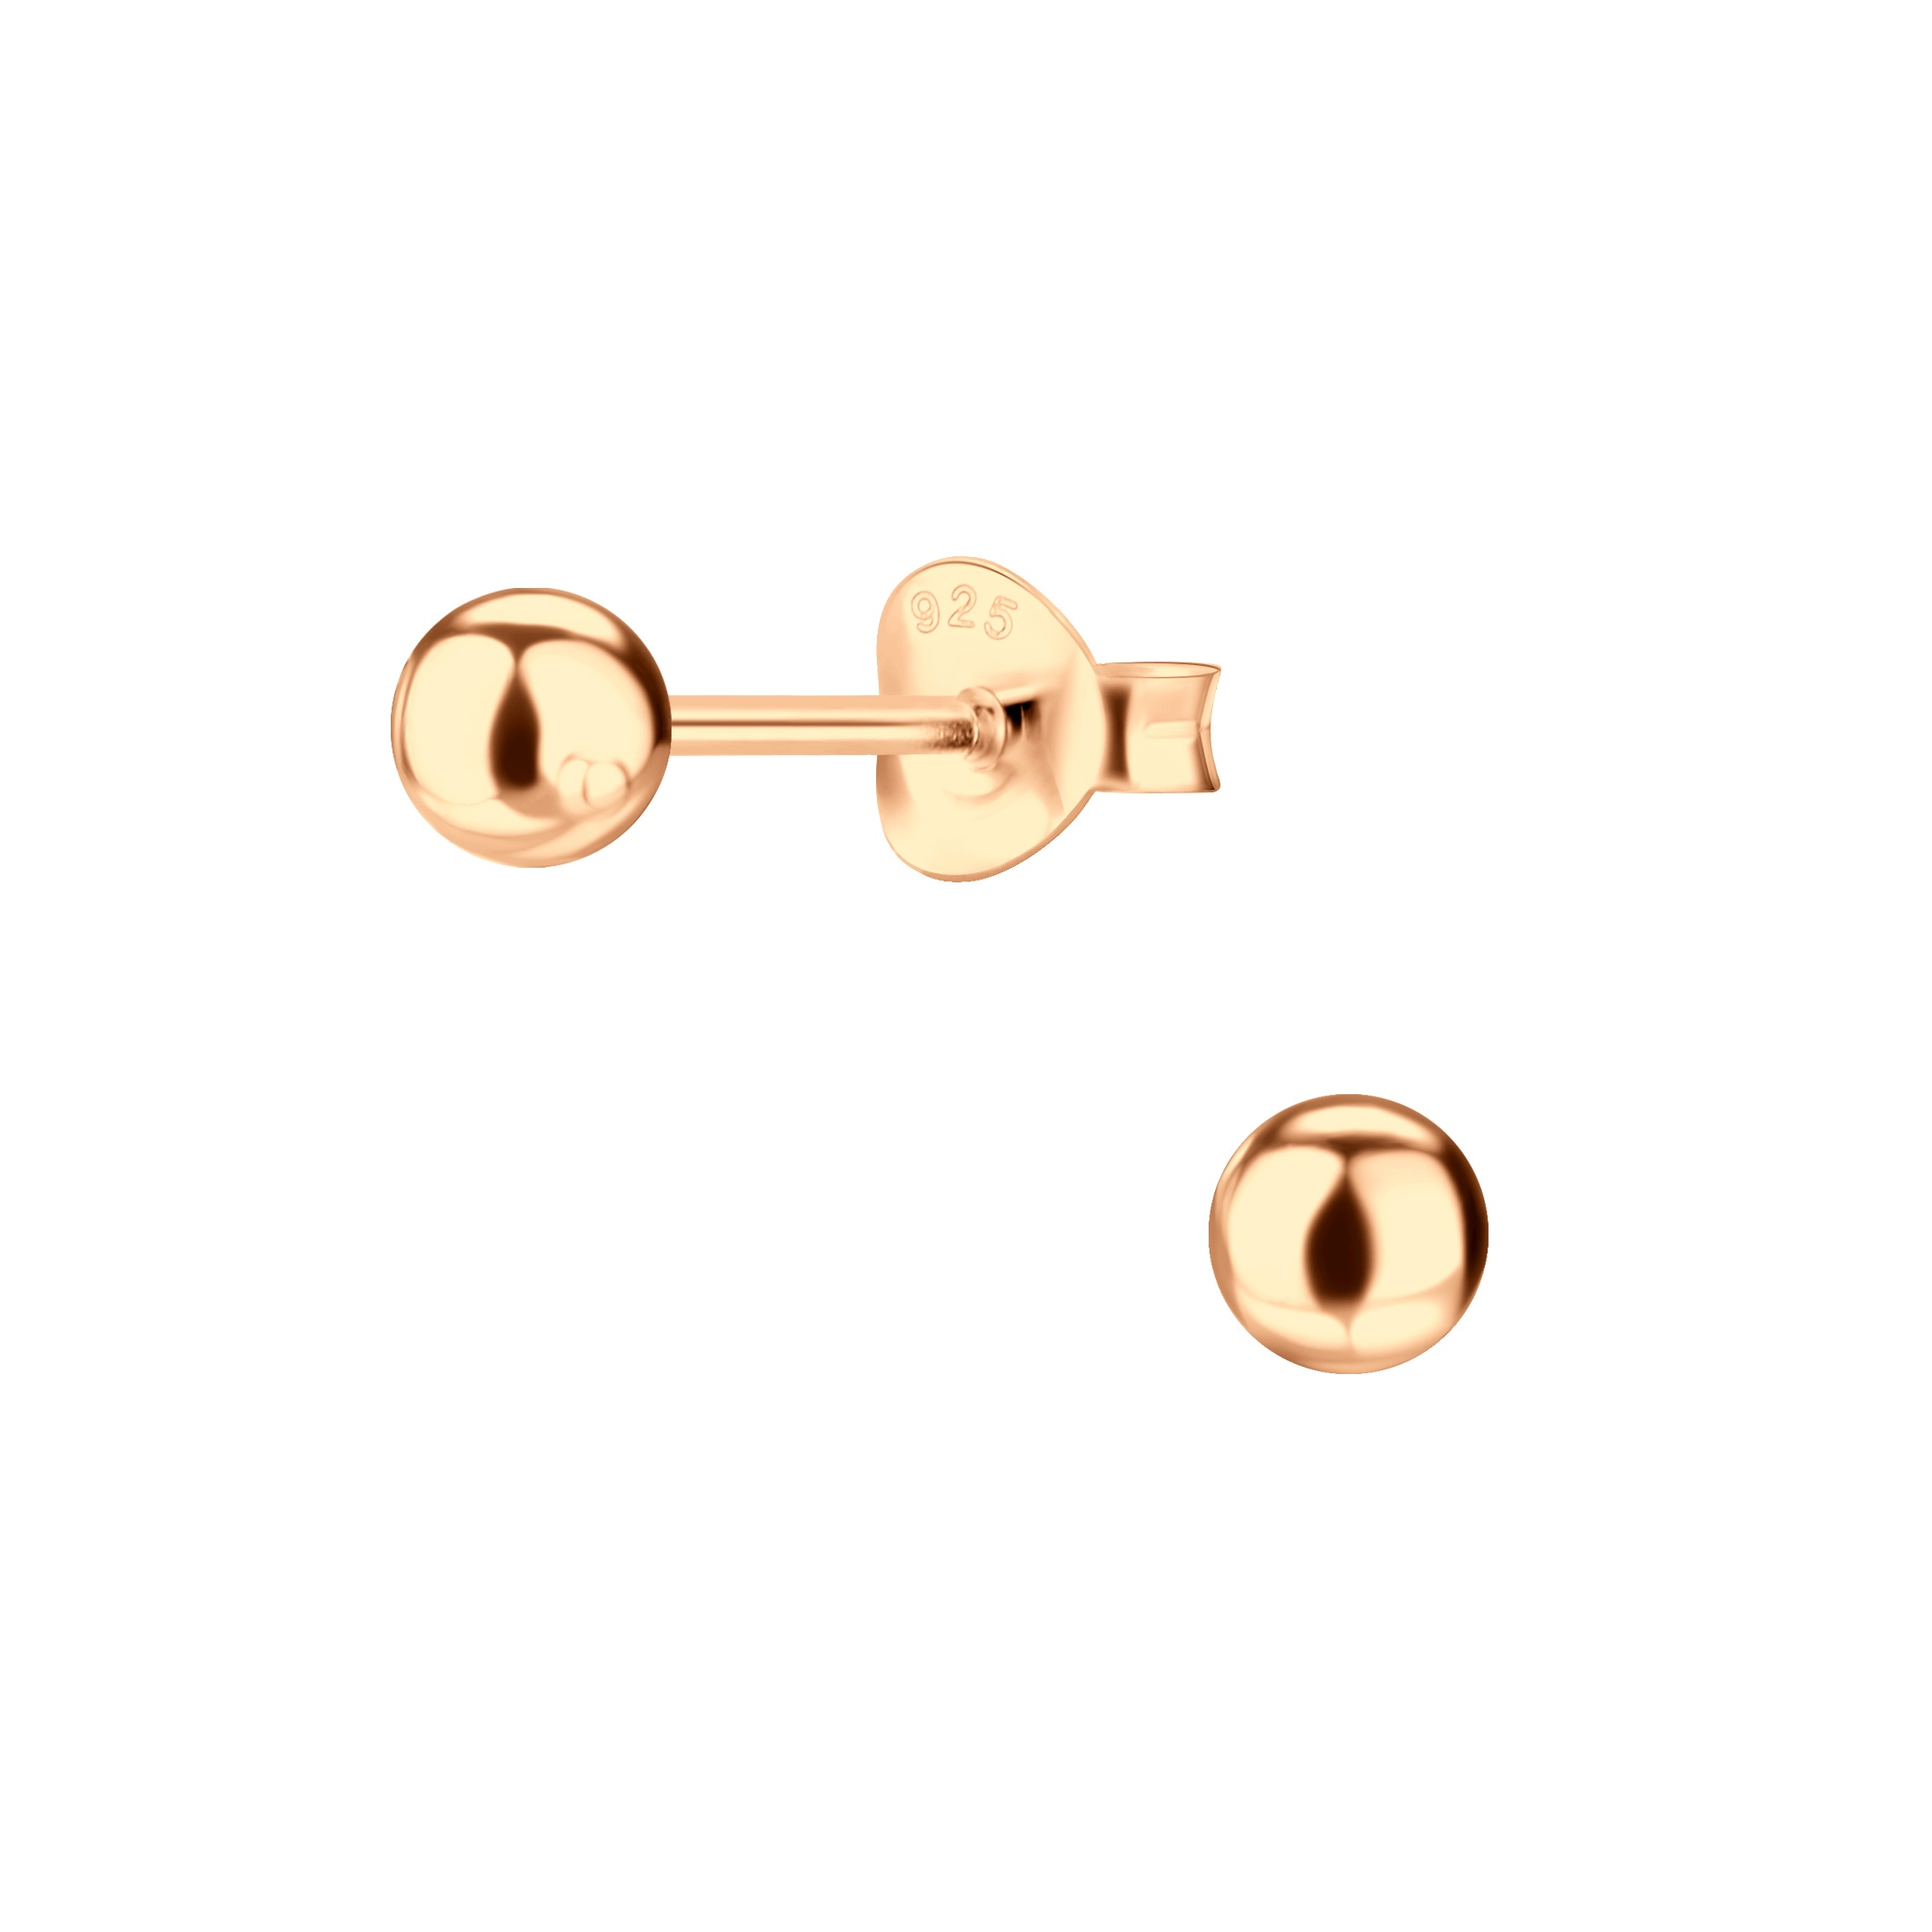 4 MM rose-gold plated nickel-free sterling silver post earrings